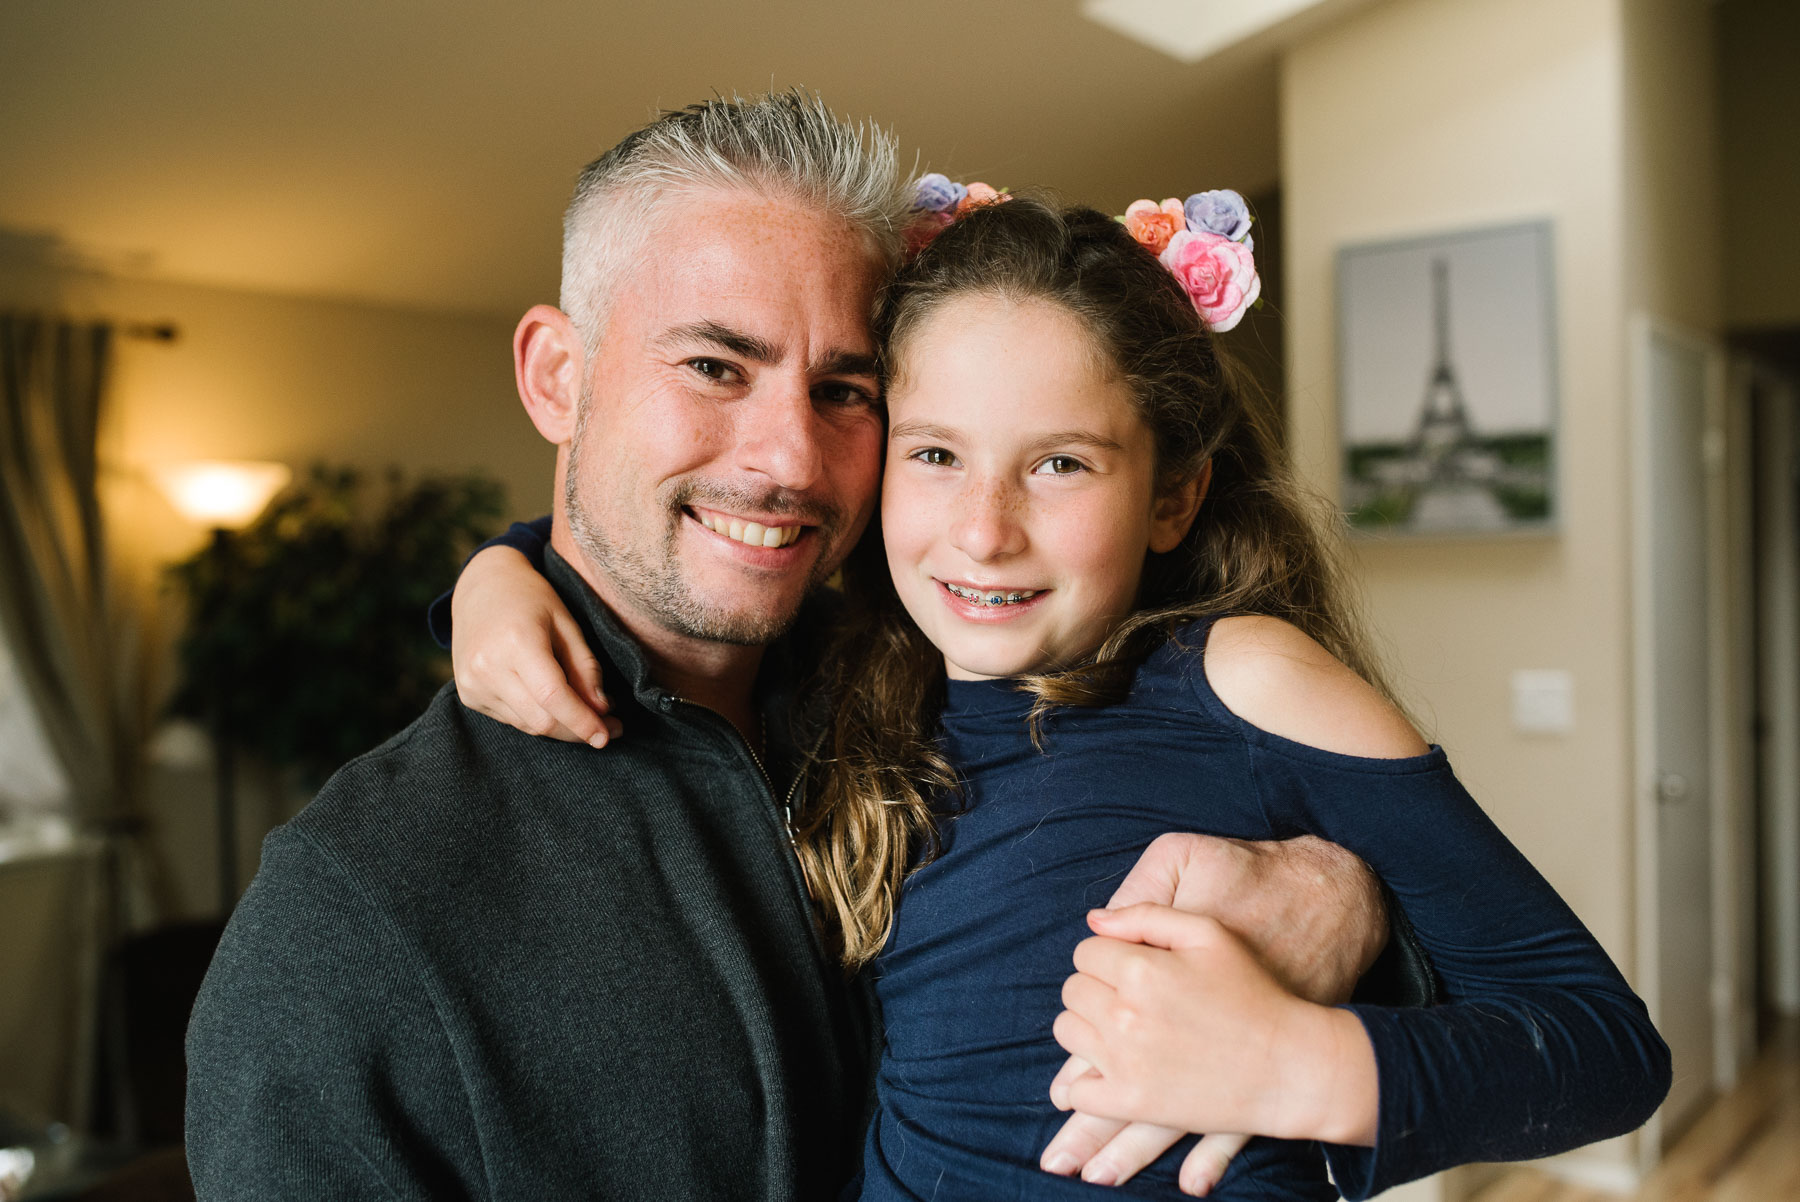 Dad with elementary aged daughter hugging in living room